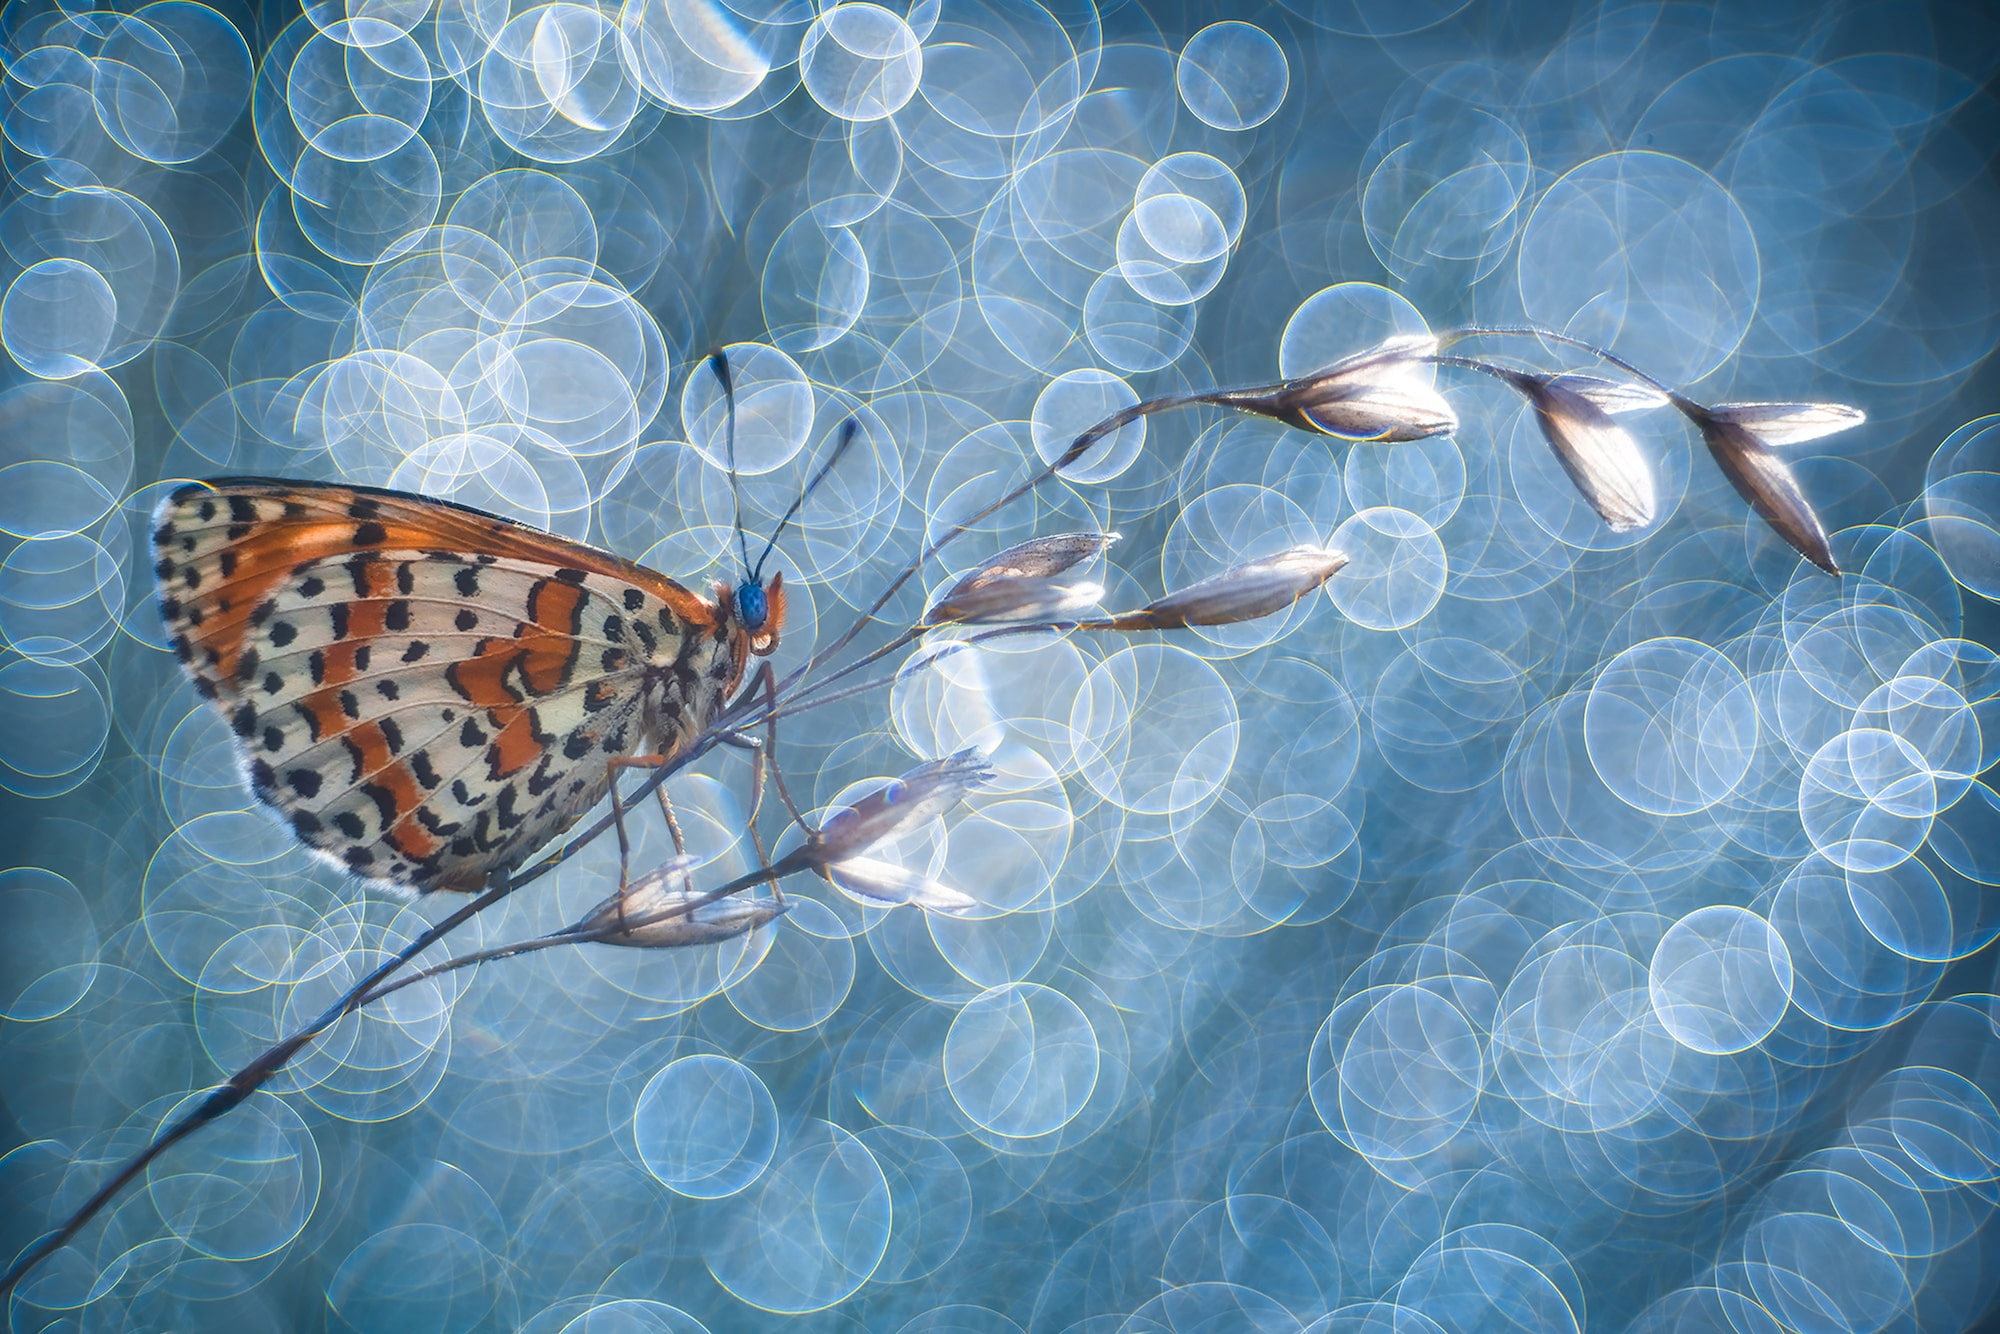 petar sabol sony alpha 99II butterfly perched on a flower stem with ring shaped lights behind